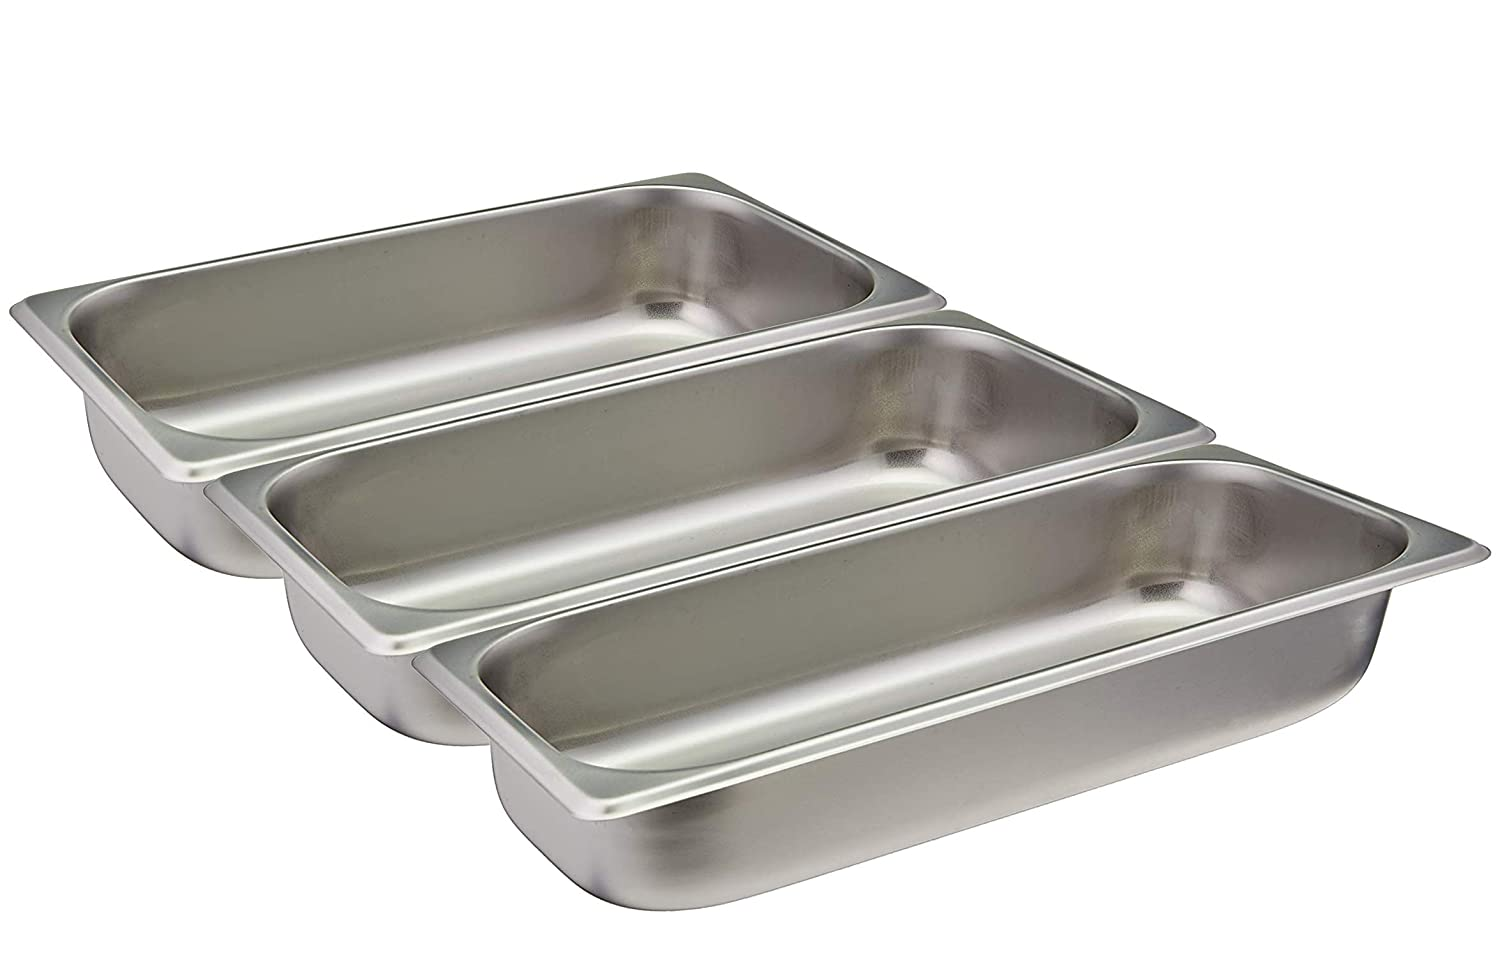 Tiger Chef 3-Pack 2.5-inch Deep, 1/3 Size Stainless Steel Steam Table Chafer Pans, Hotels, Restaurant, Pan (3, Third Size Pans)